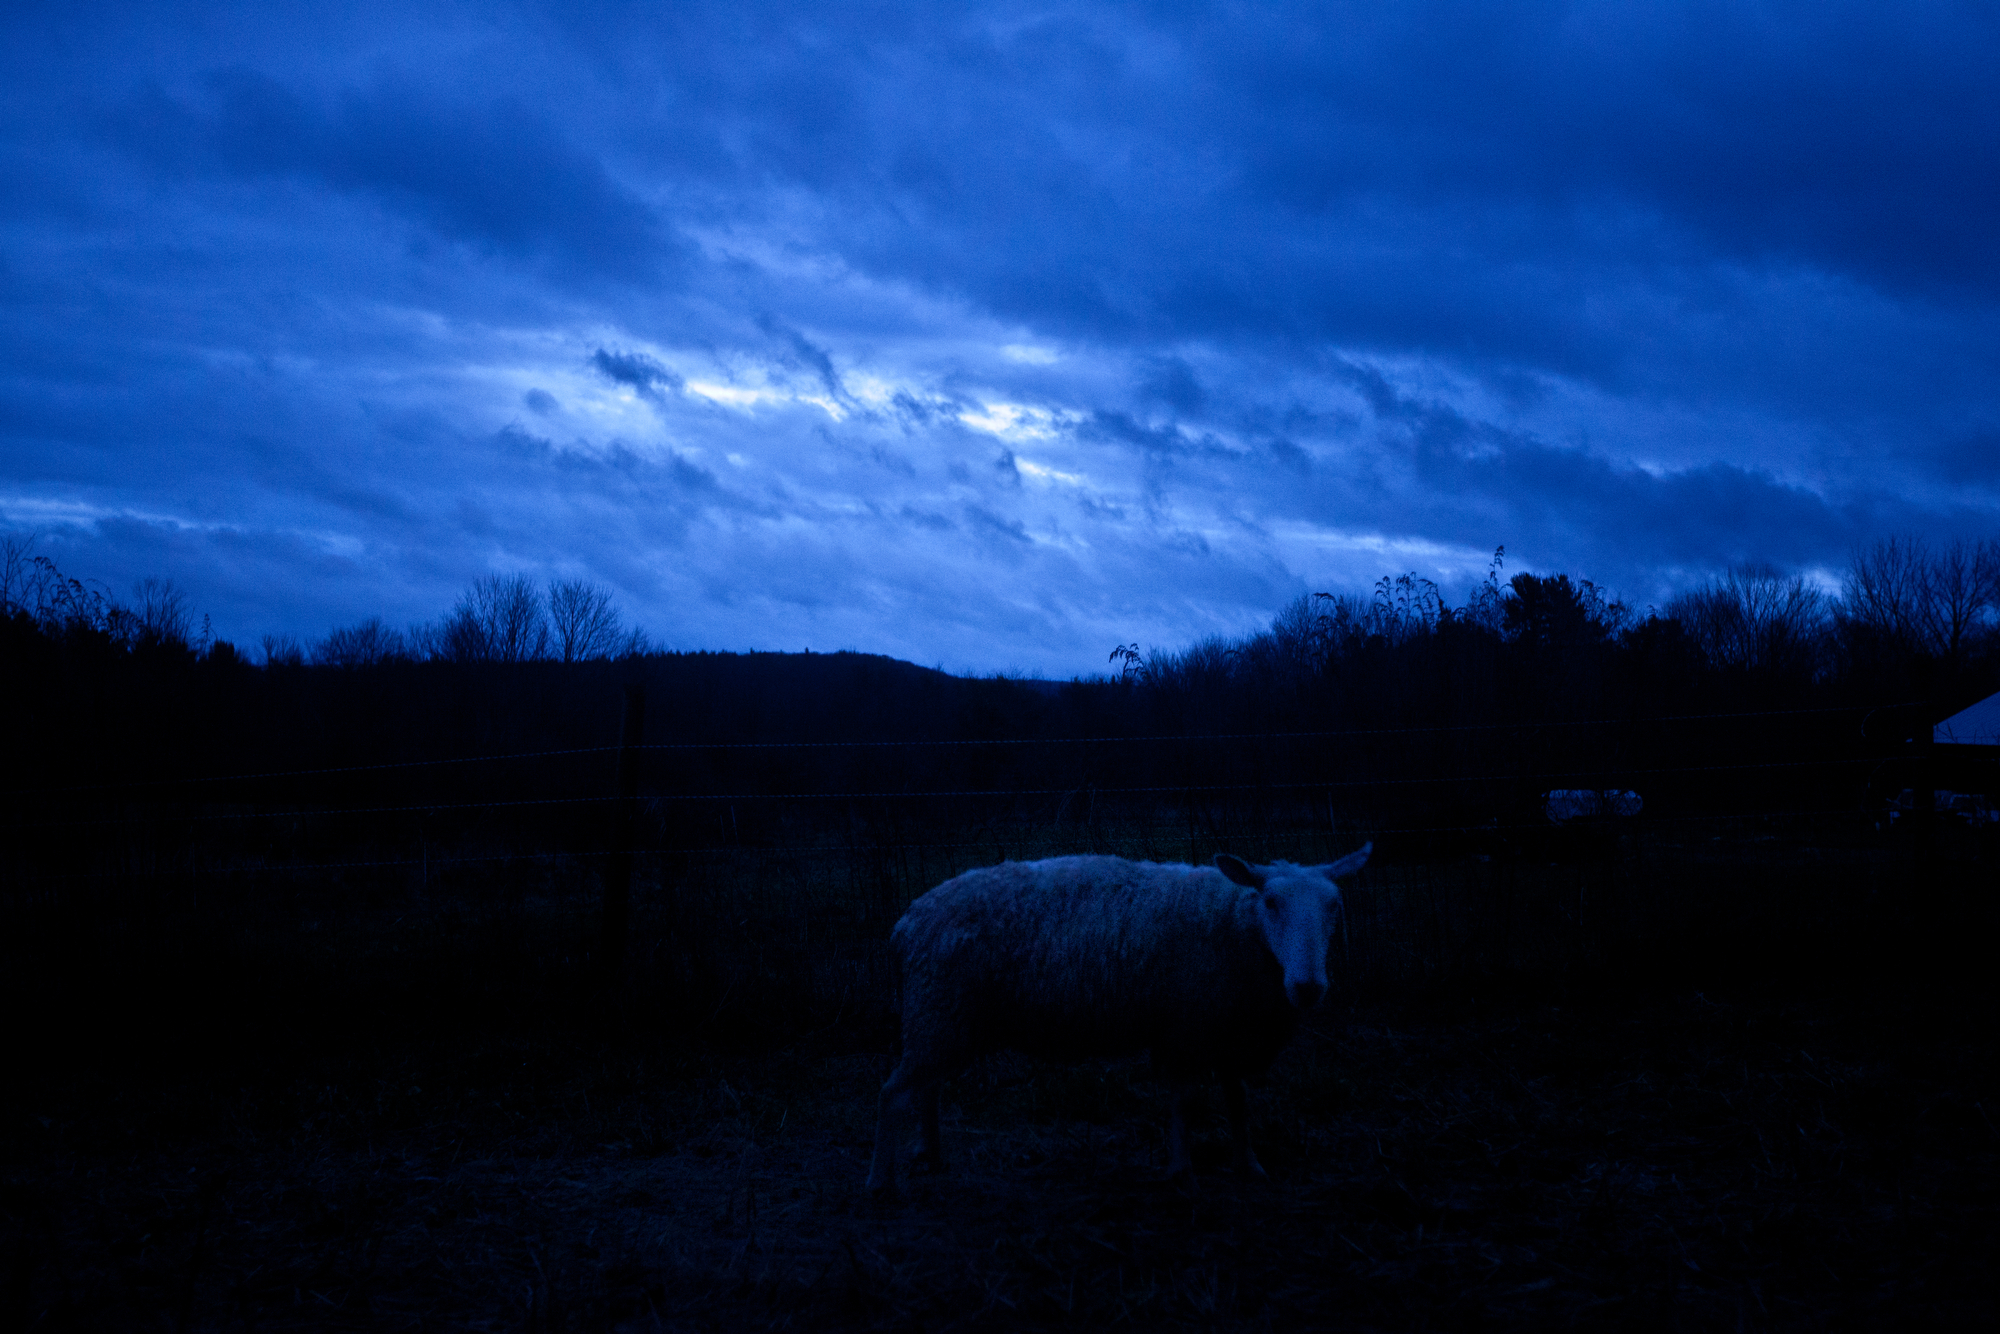 A sheep wanders near the protection of a barn early in the morning as Hurricane Sandy blows through.